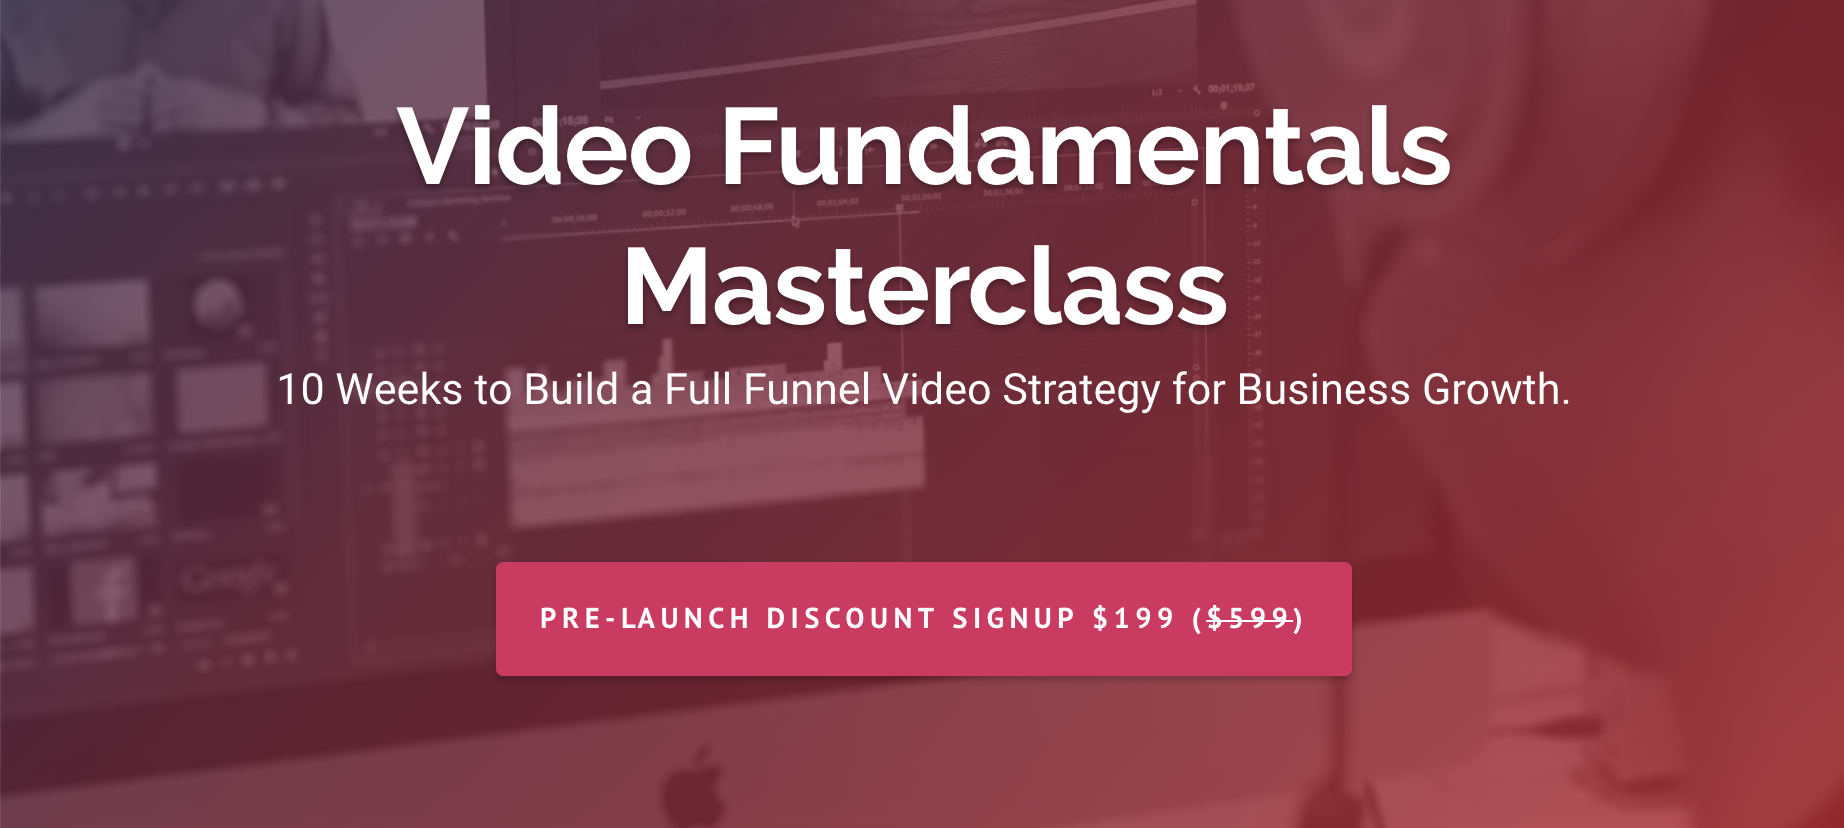 2019 Video Marketing Strategy, Tips, Tricks, & How-To: The